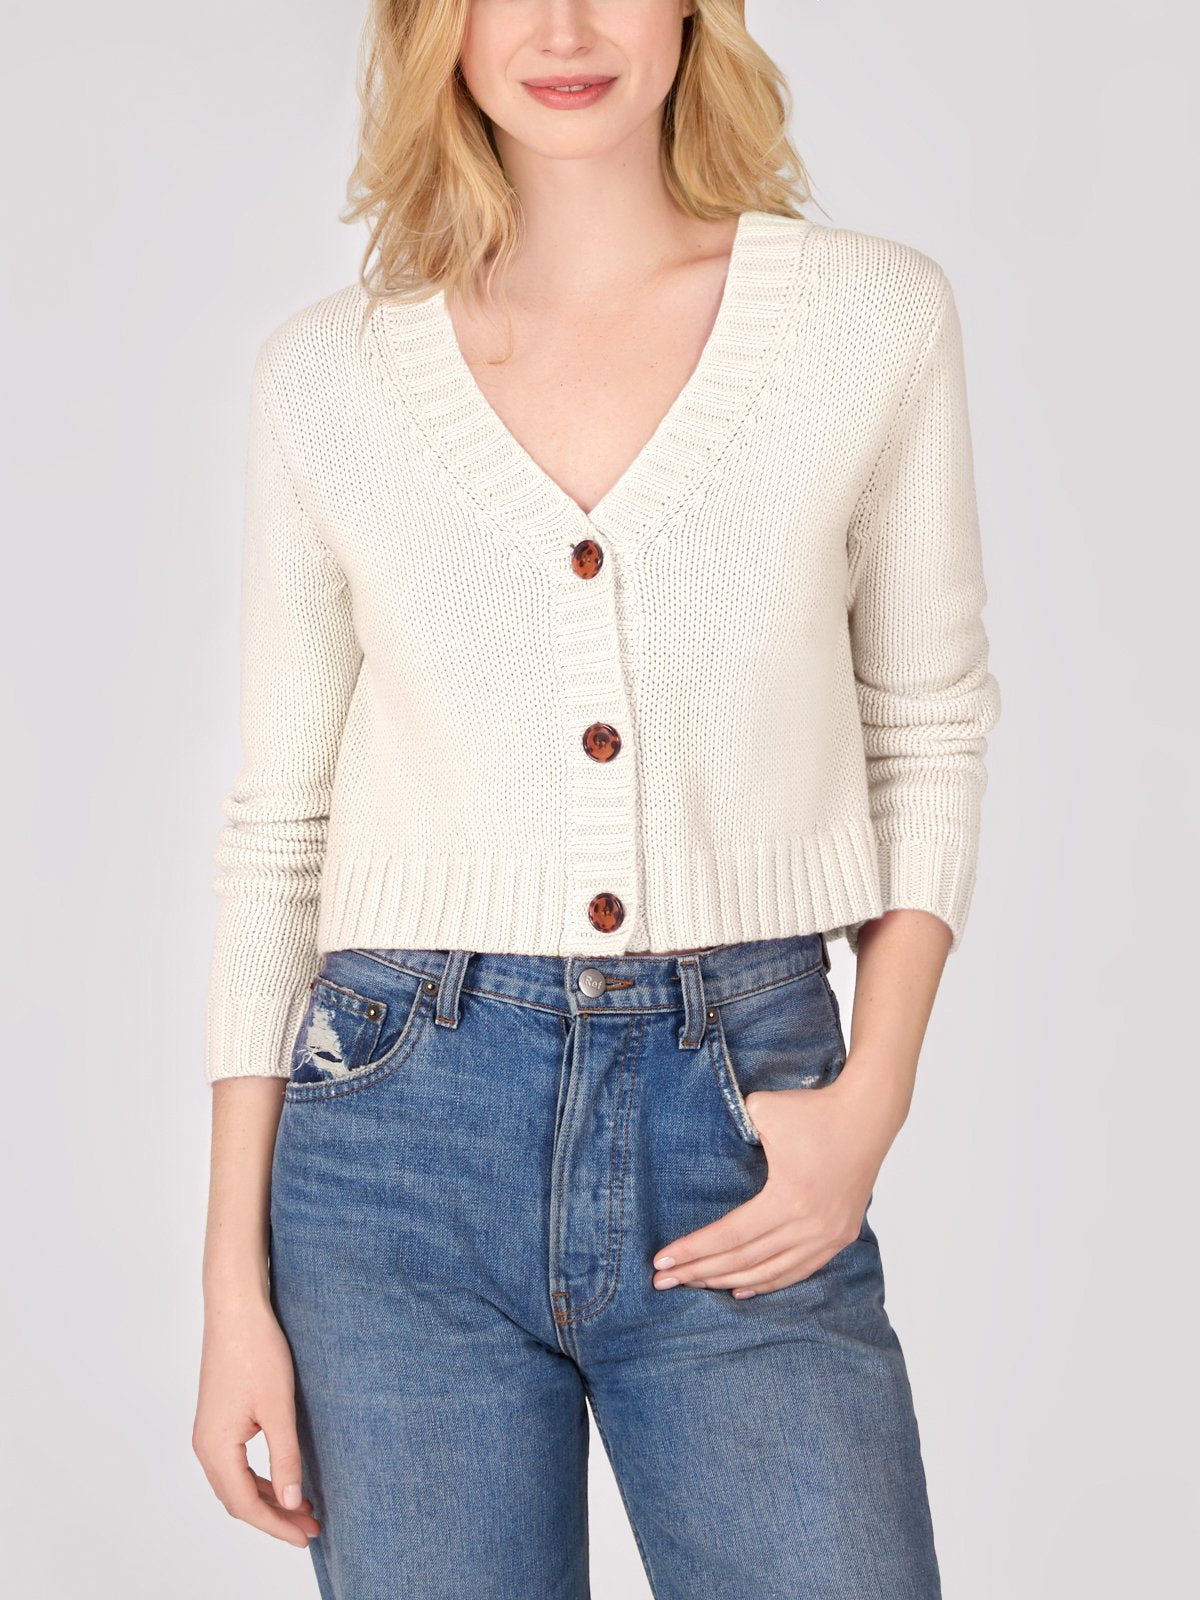 Cotton Shaker Cropped V-Neck Cardigan - Chalk